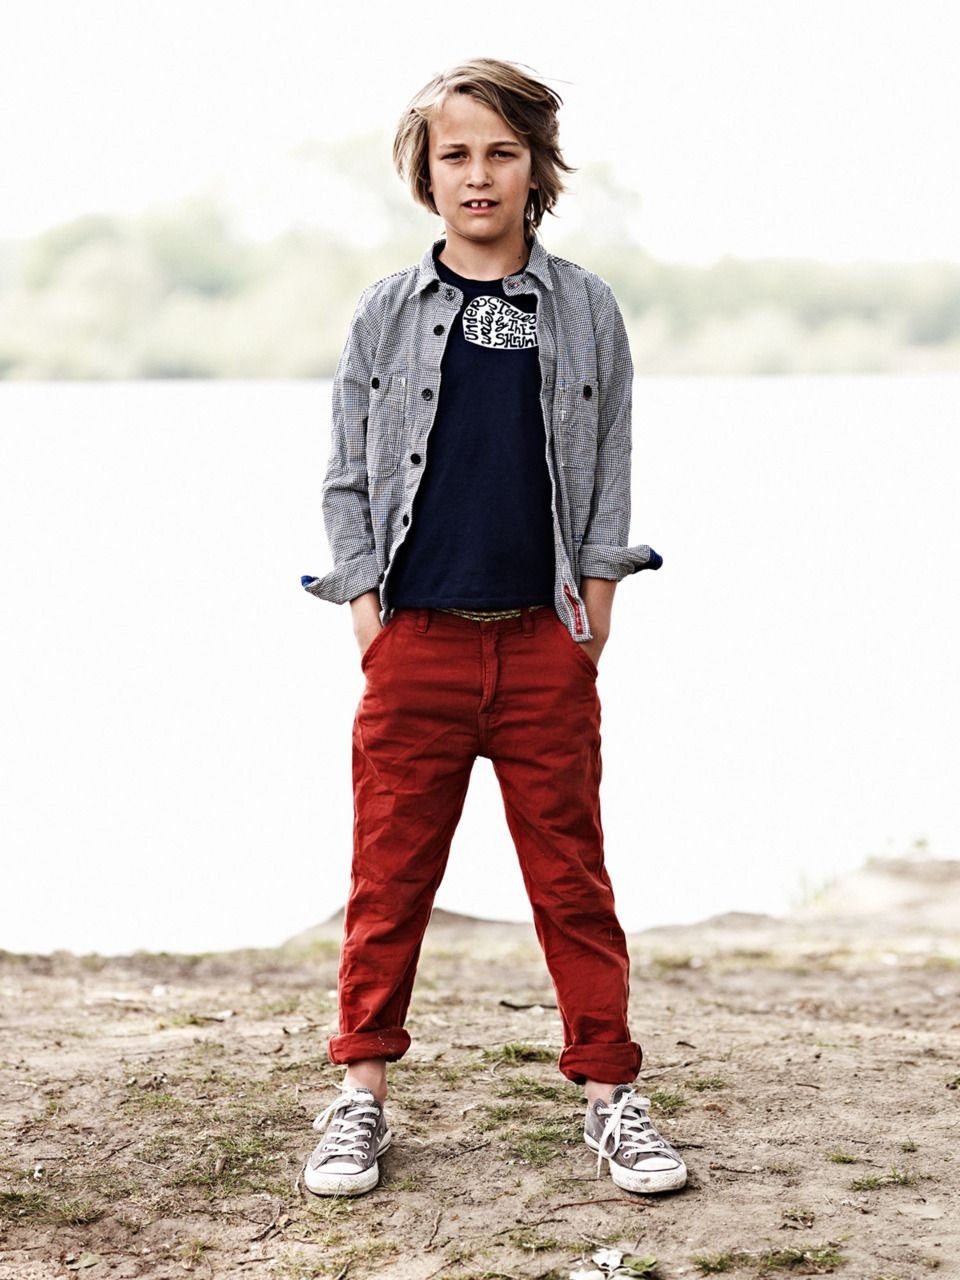 070a49520ac5 Vogue Enfants. great outfit for a tween boy!